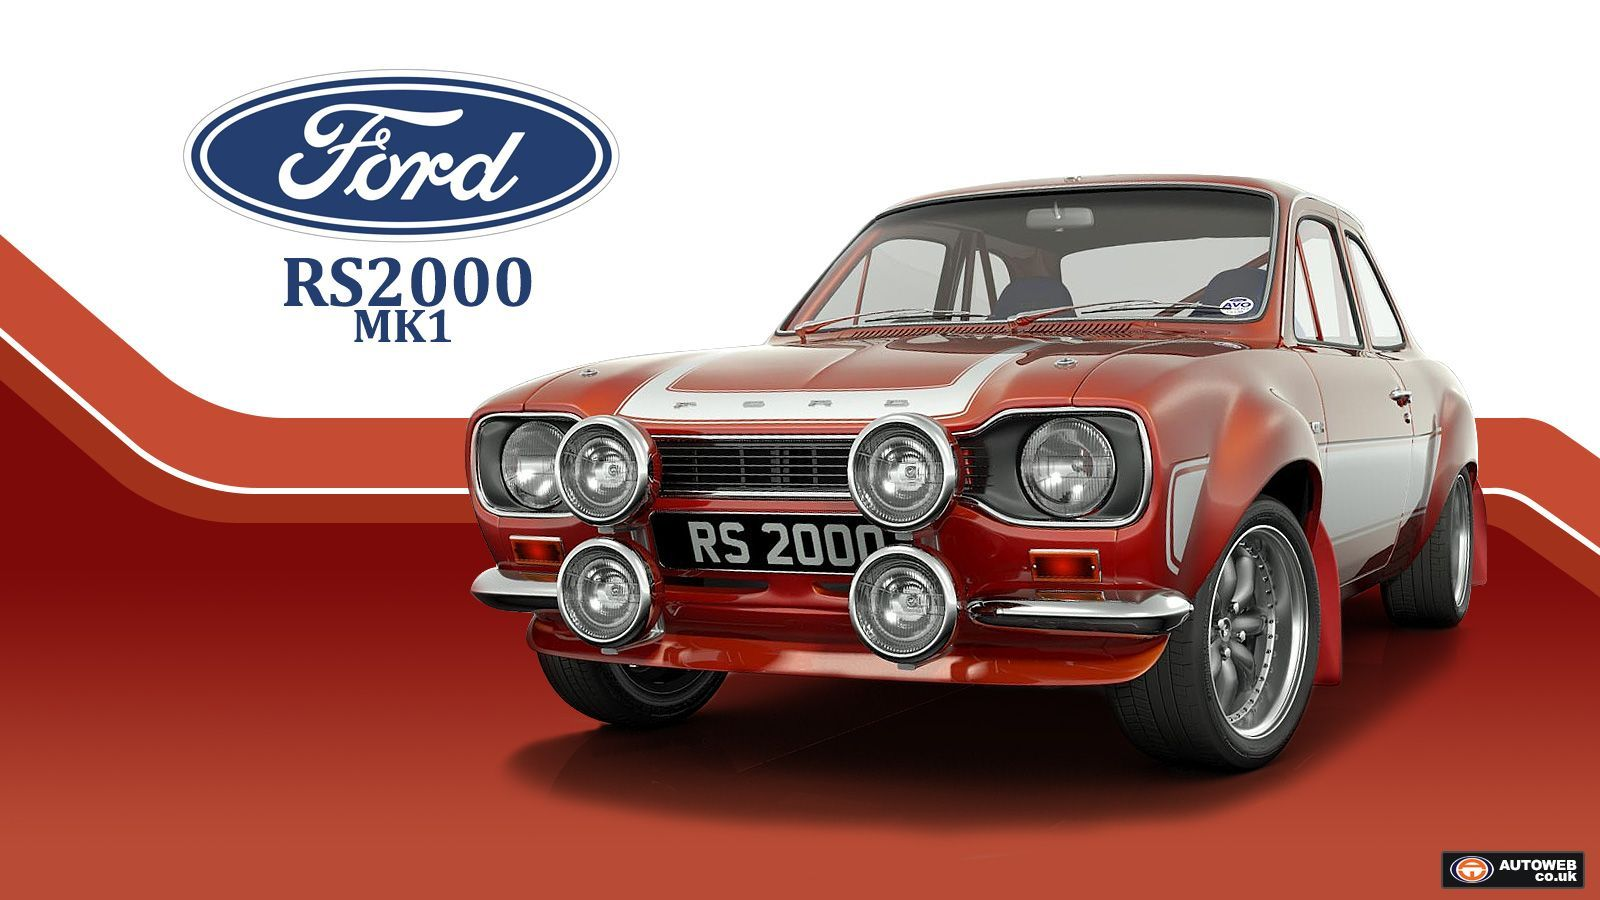 1600x900 - Ford Escort Wallpapers 29